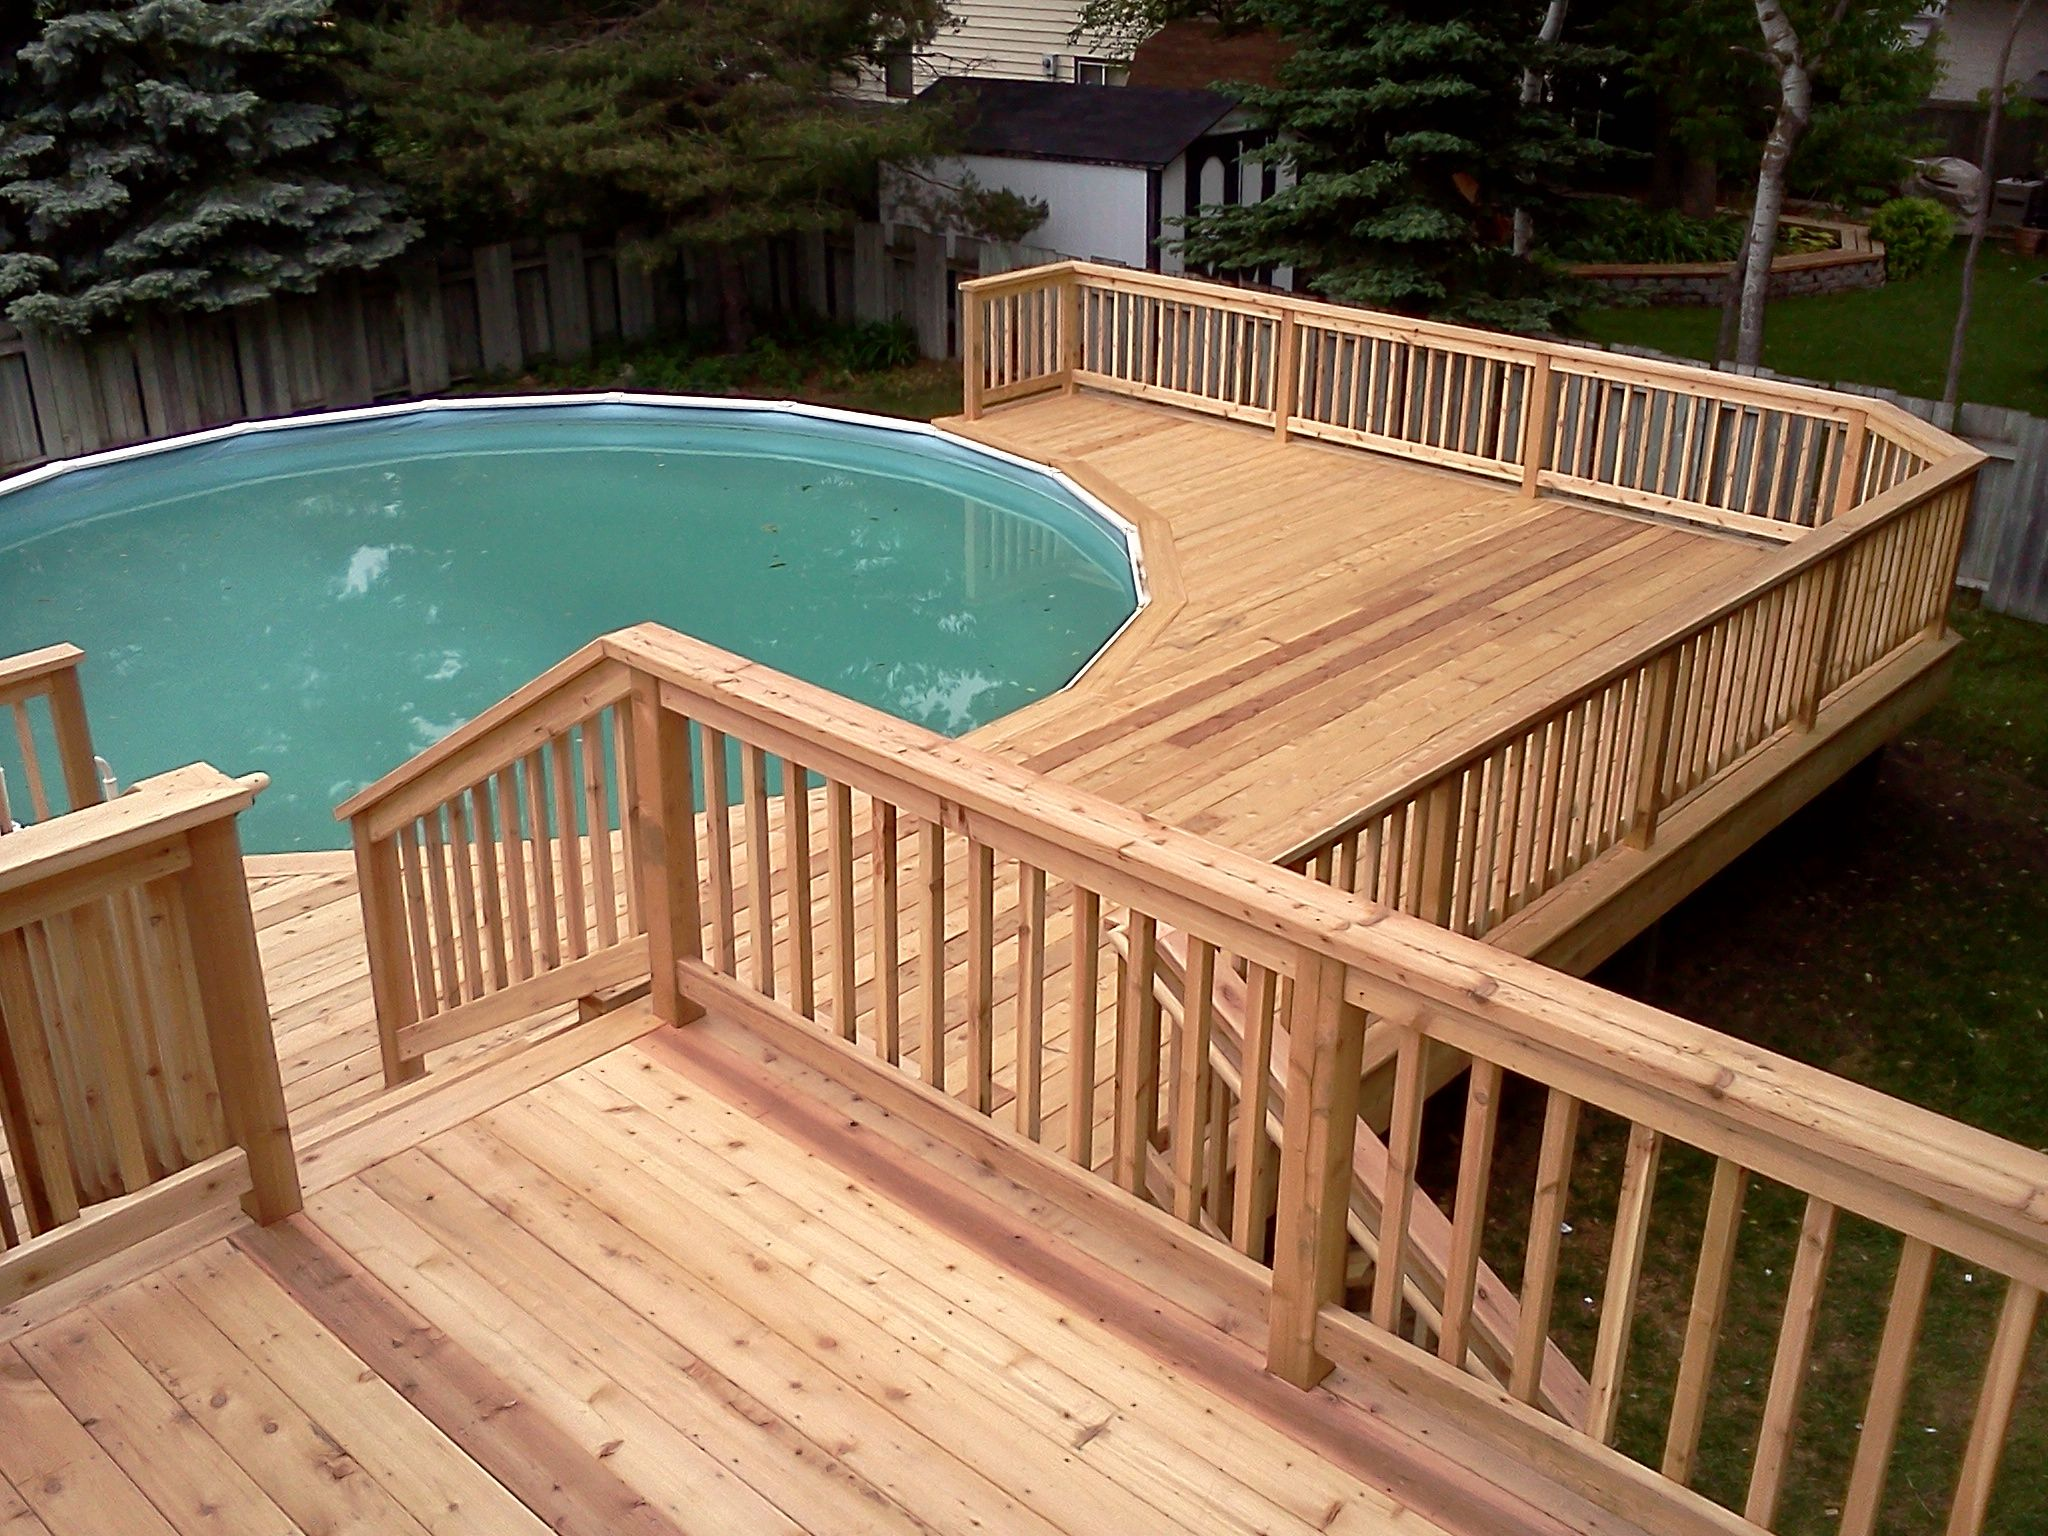 swimming pool simple wooden pool deck ideas for small and round shape swimming pool design scenic. Interior Design Ideas. Home Design Ideas